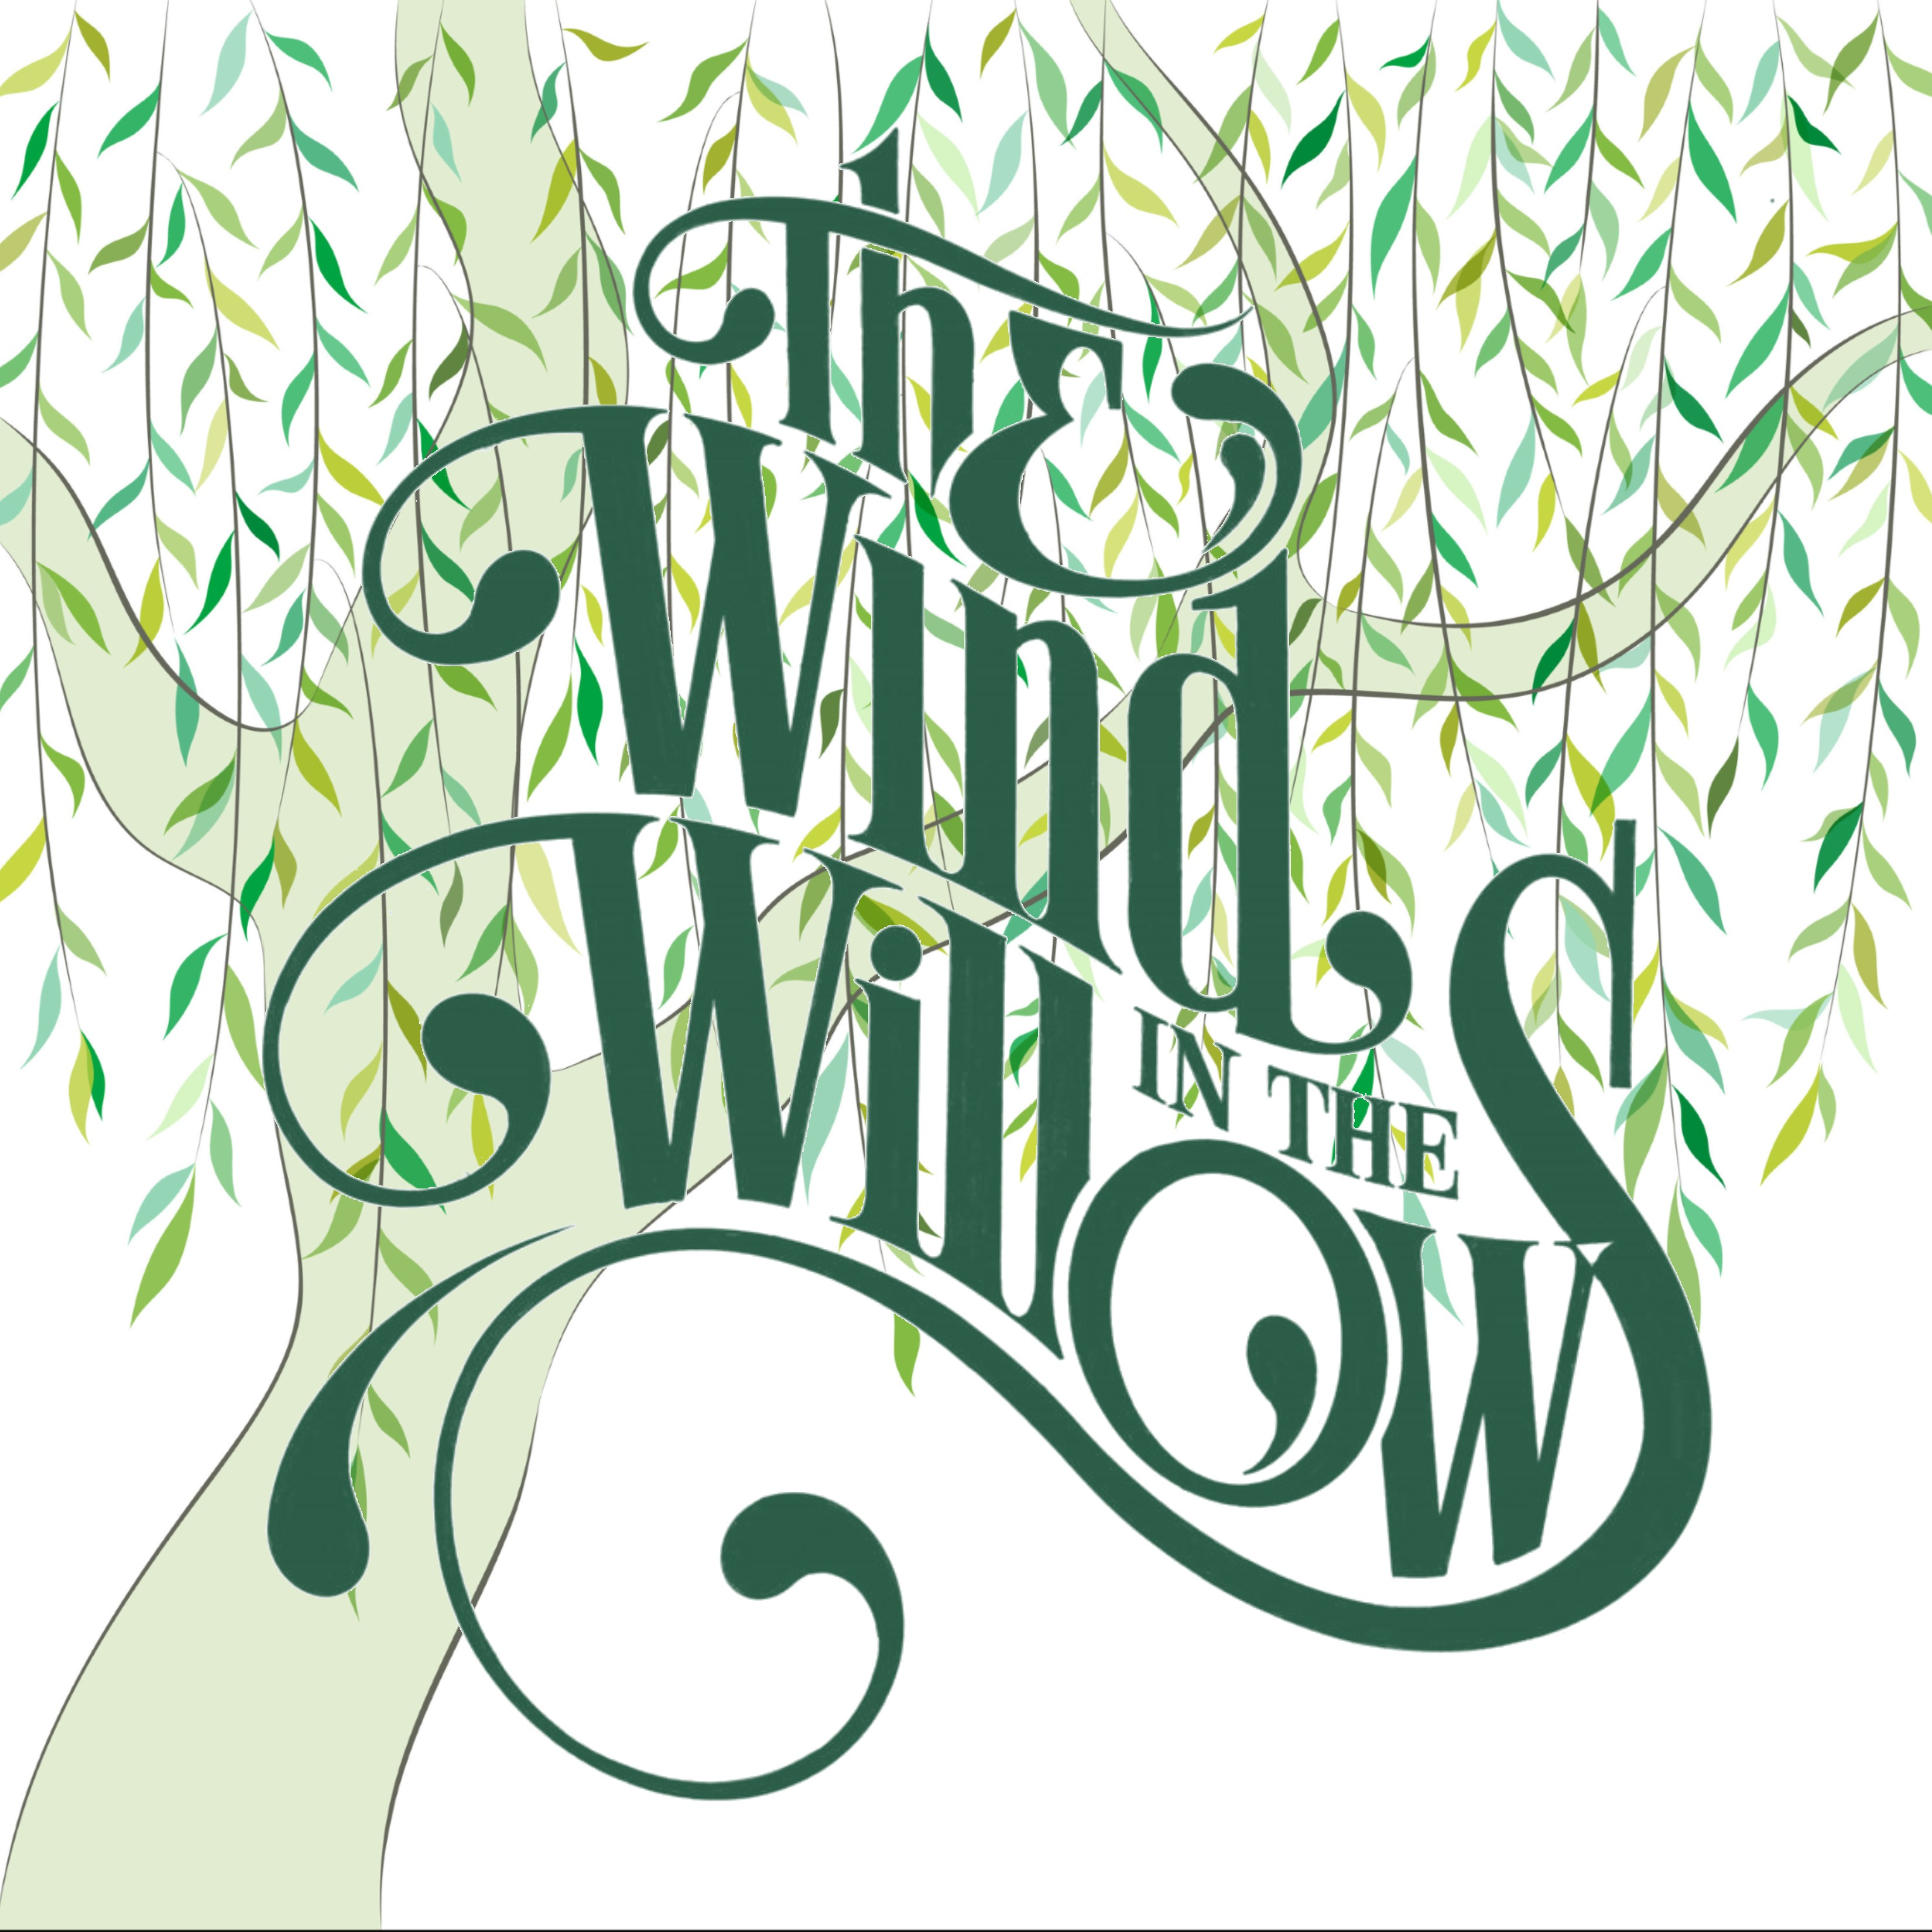 Summer Camp: The Wind in the Willows